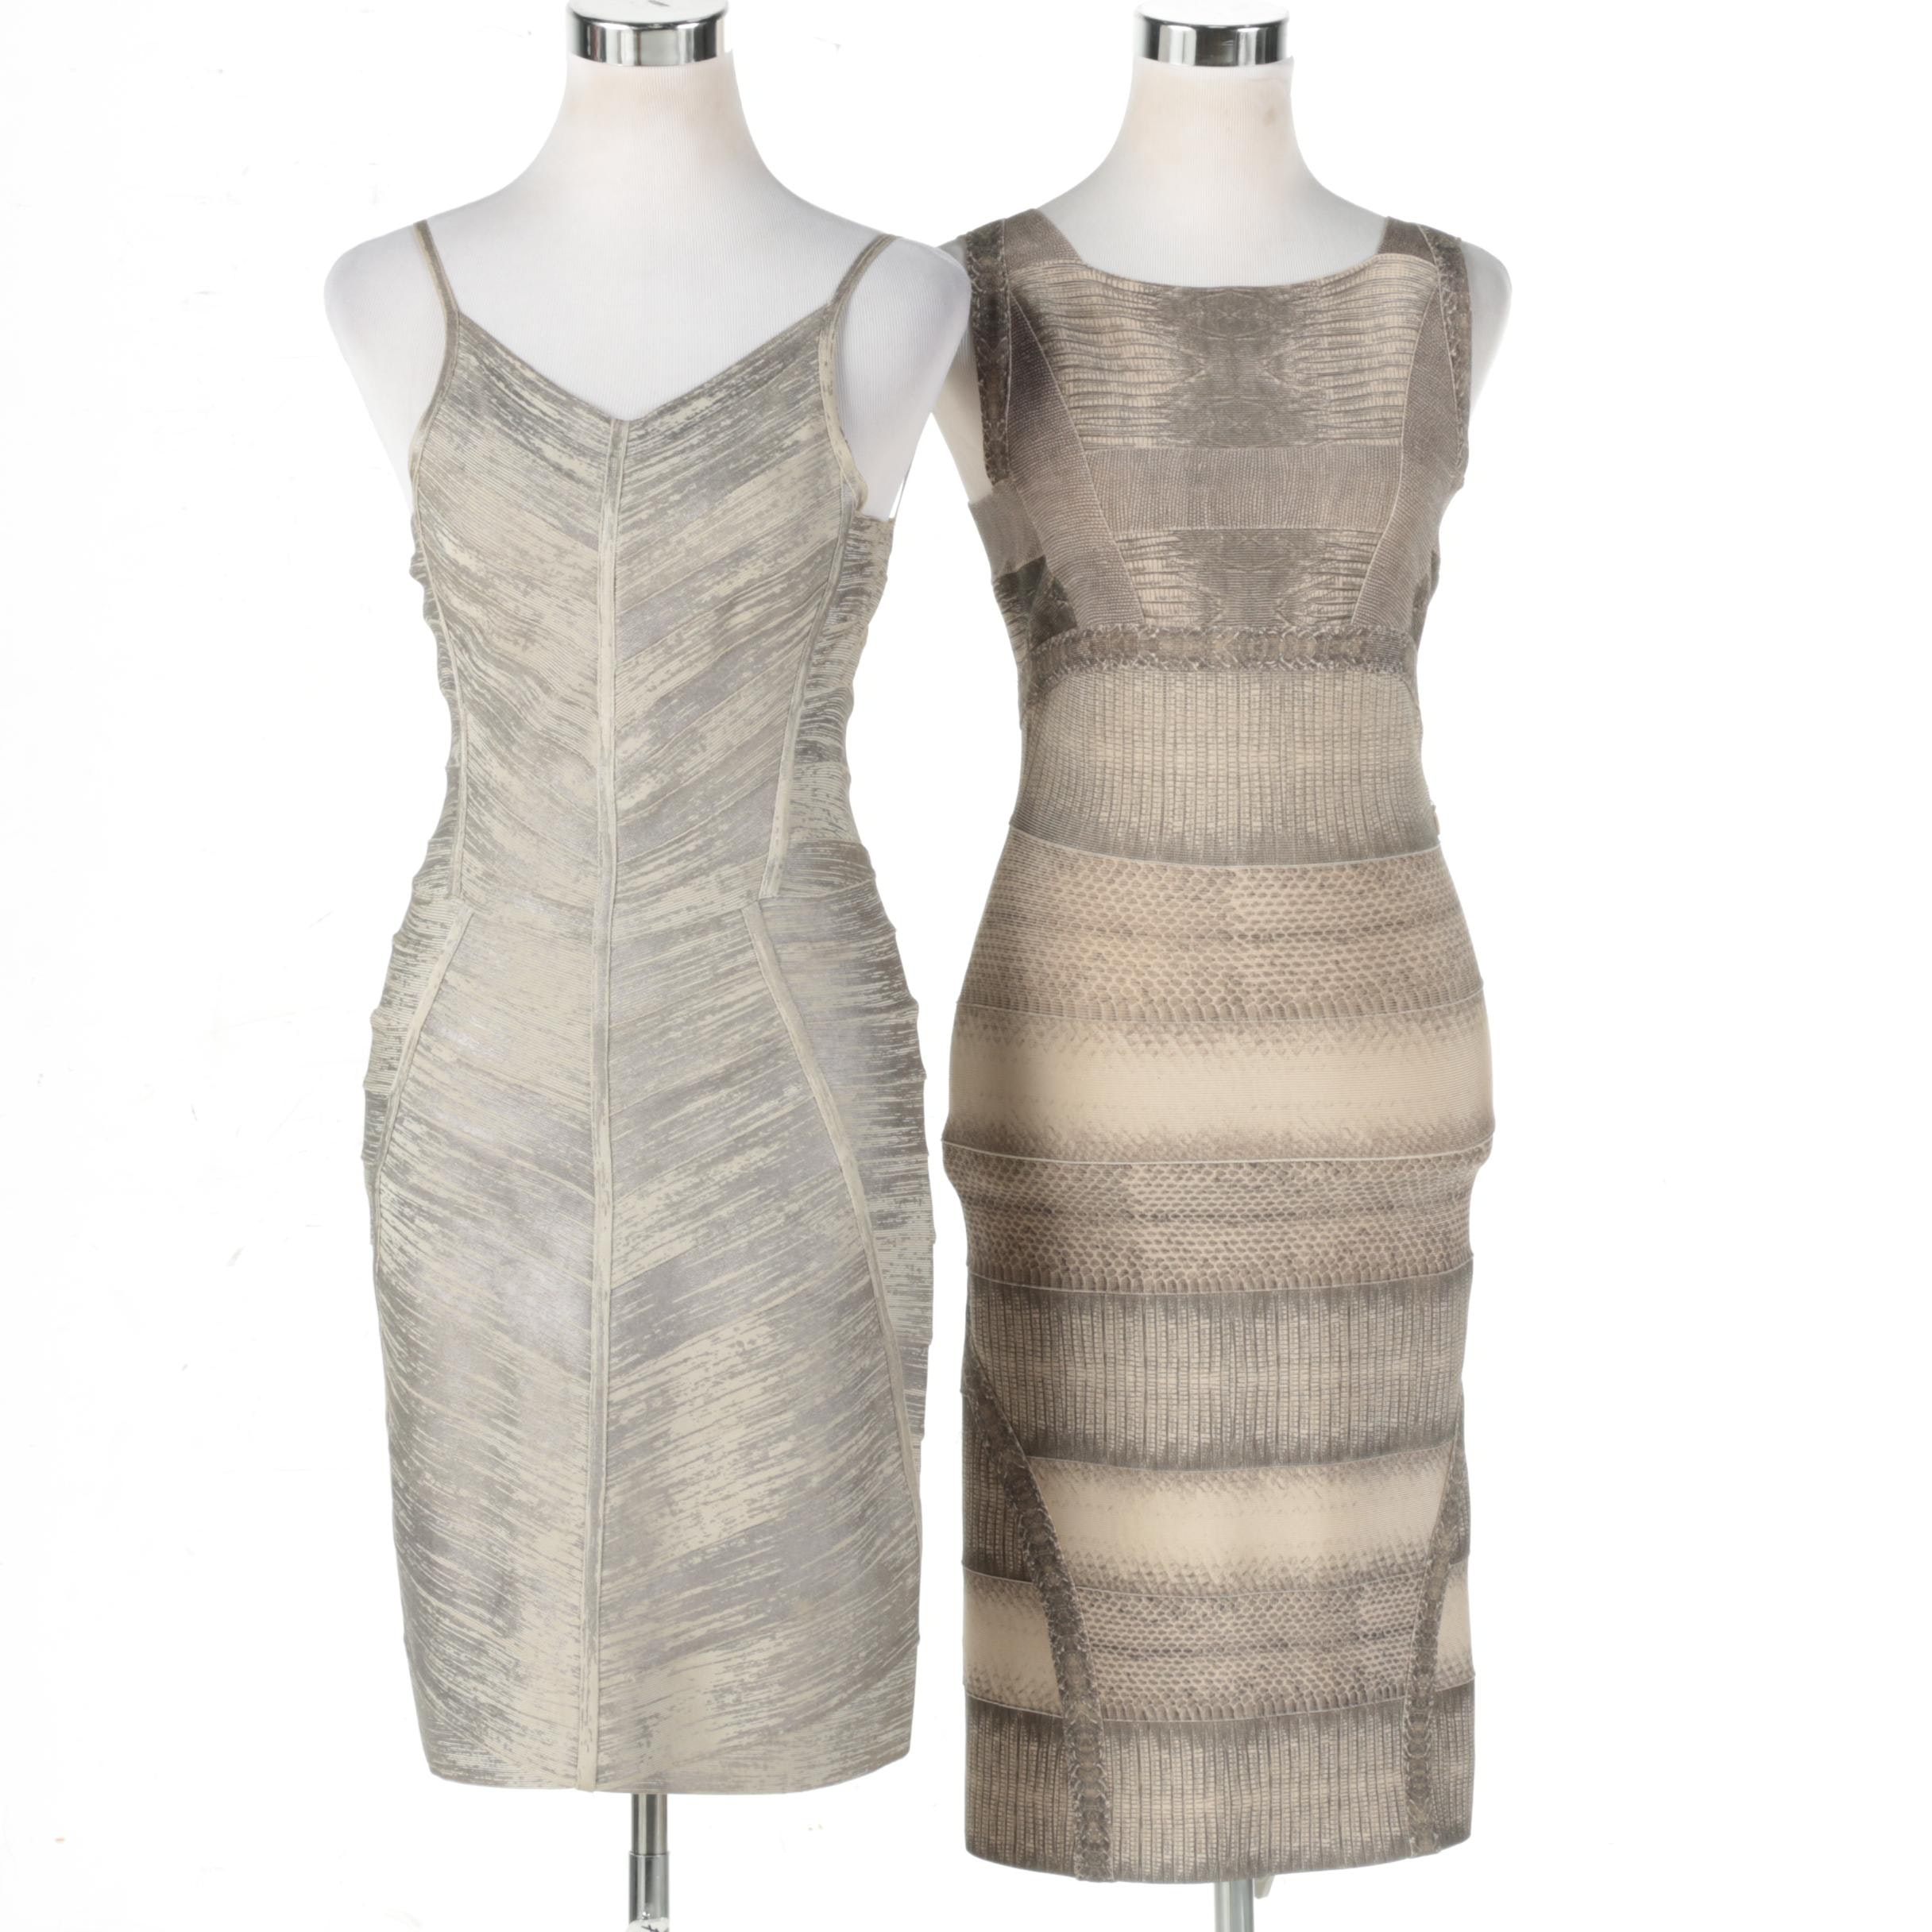 Pair of Women's Herve Leger Dresses